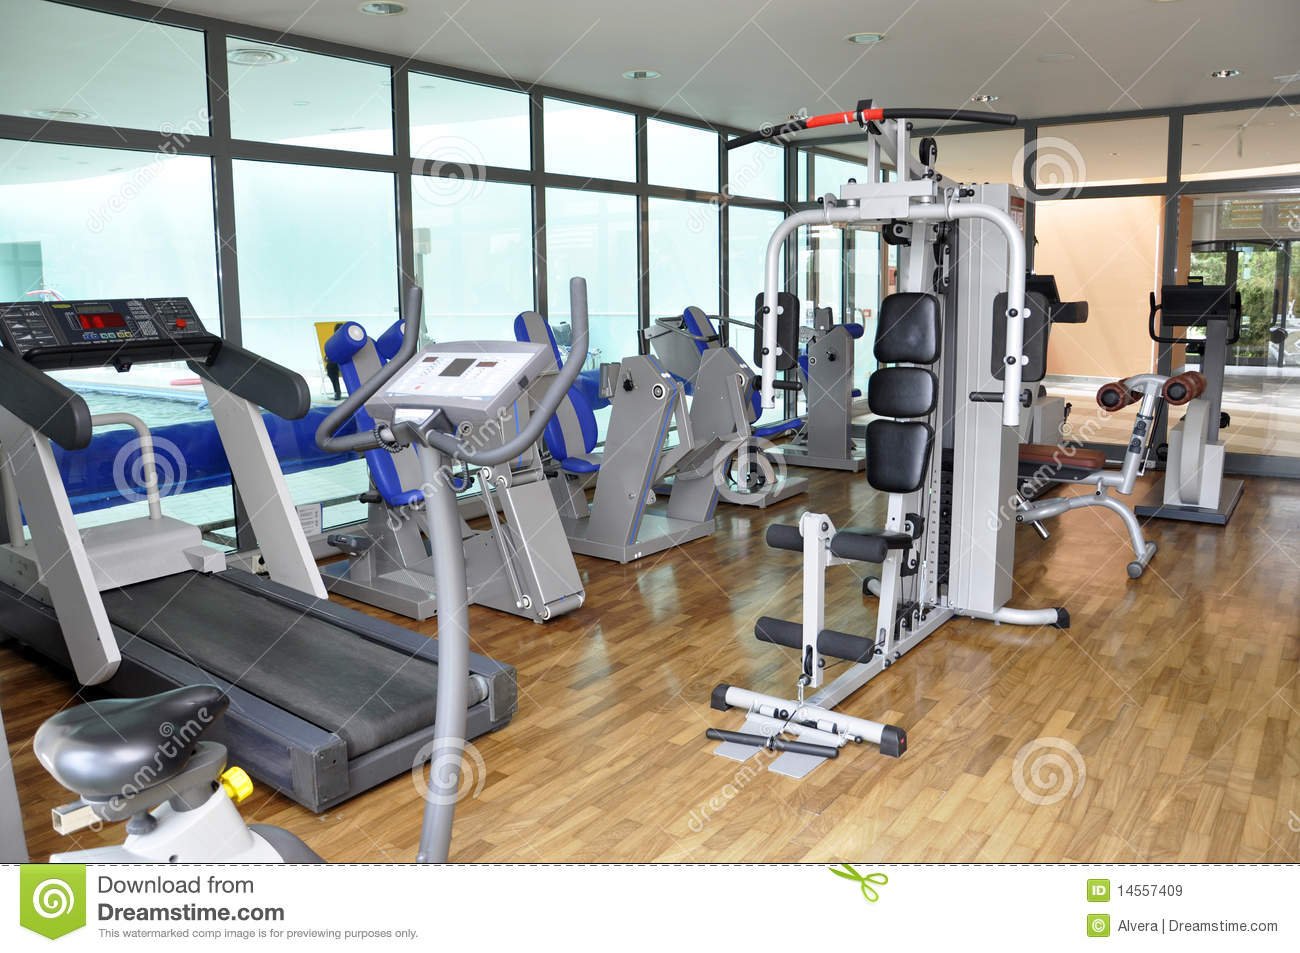 Gym workout equipment stock image of bicycle diet